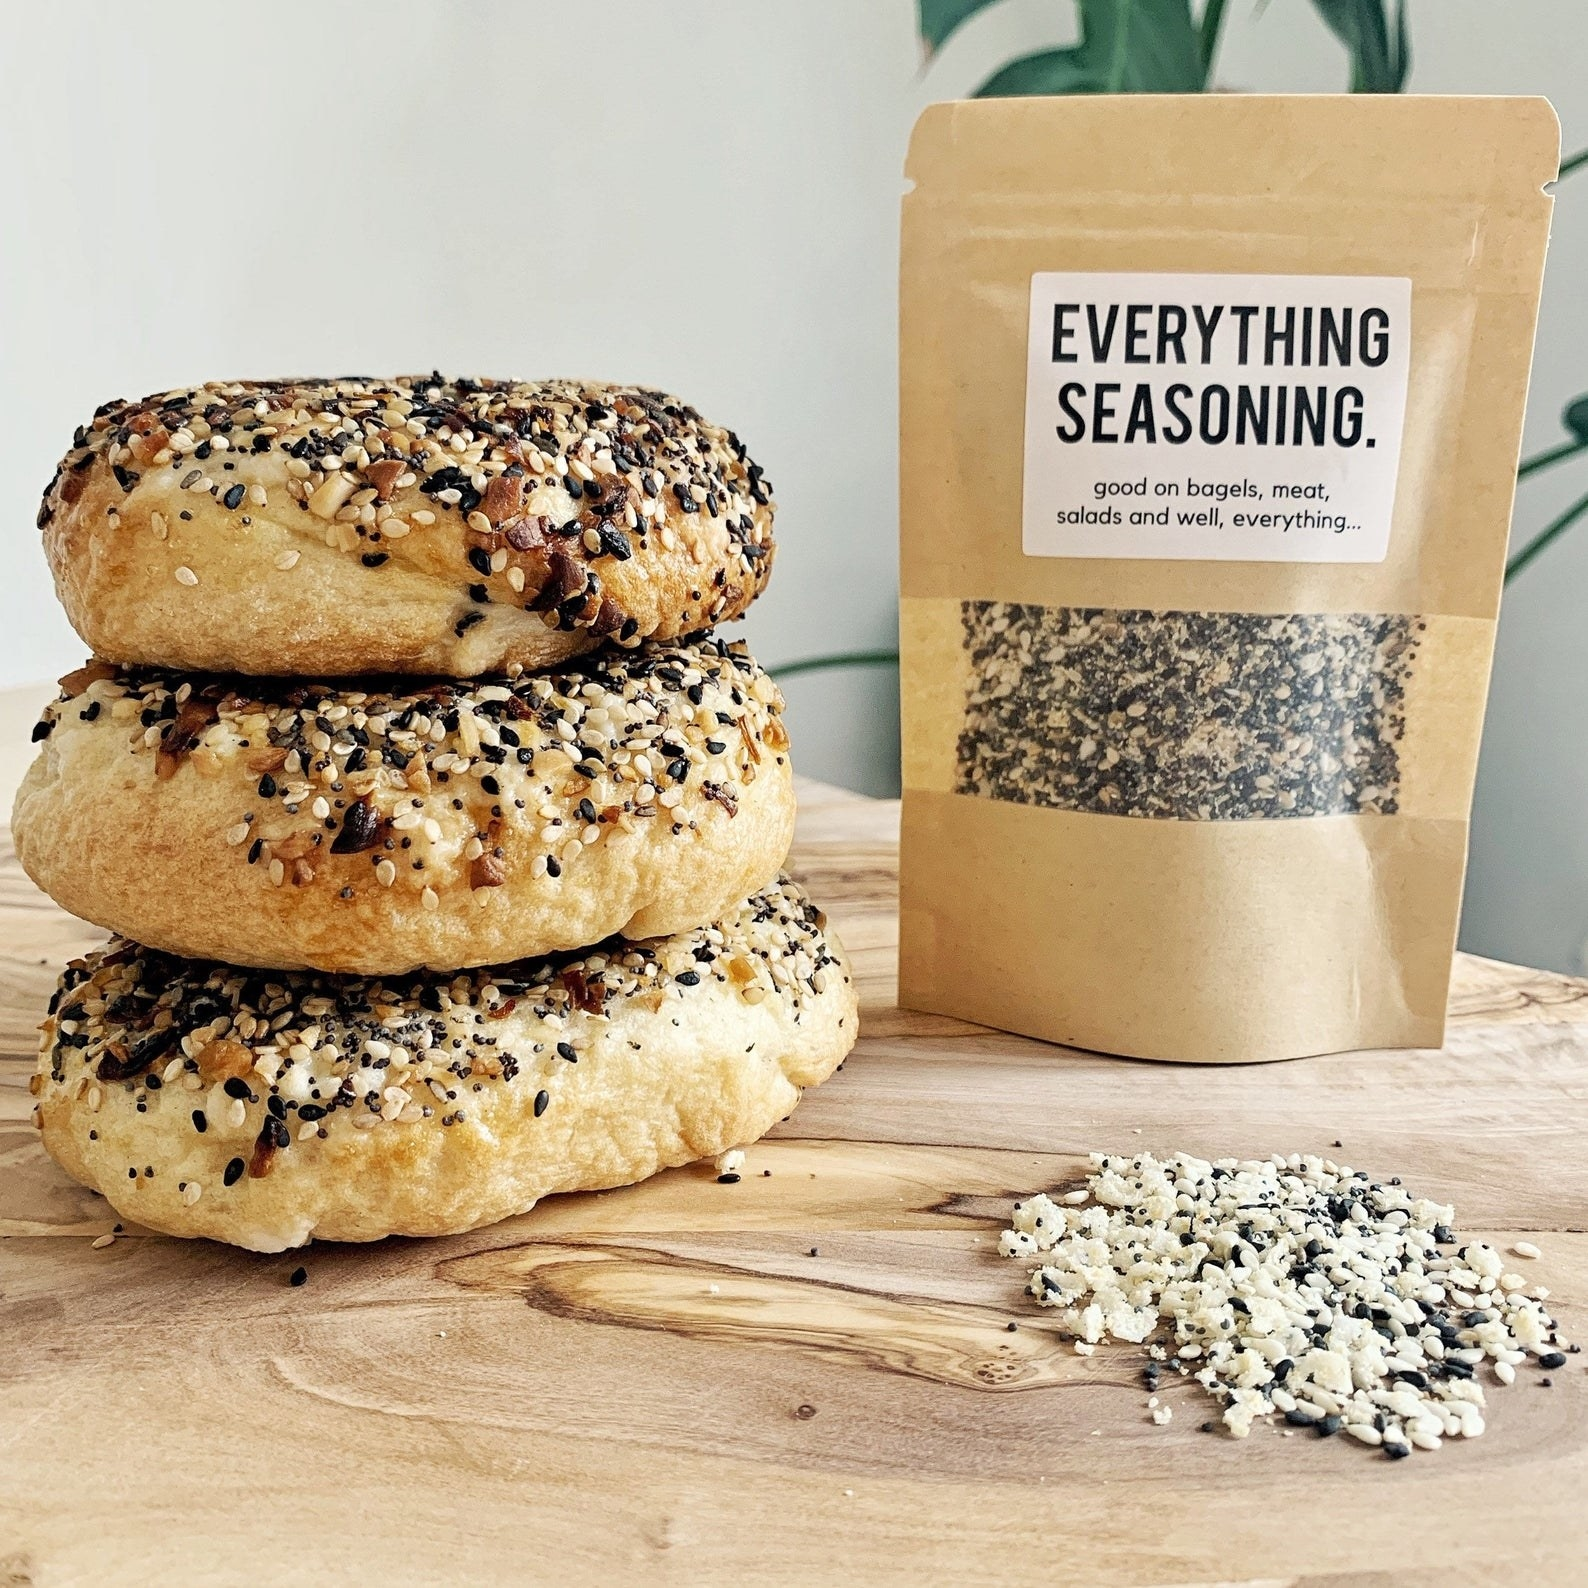 The seasoning package next to a stack of bagels